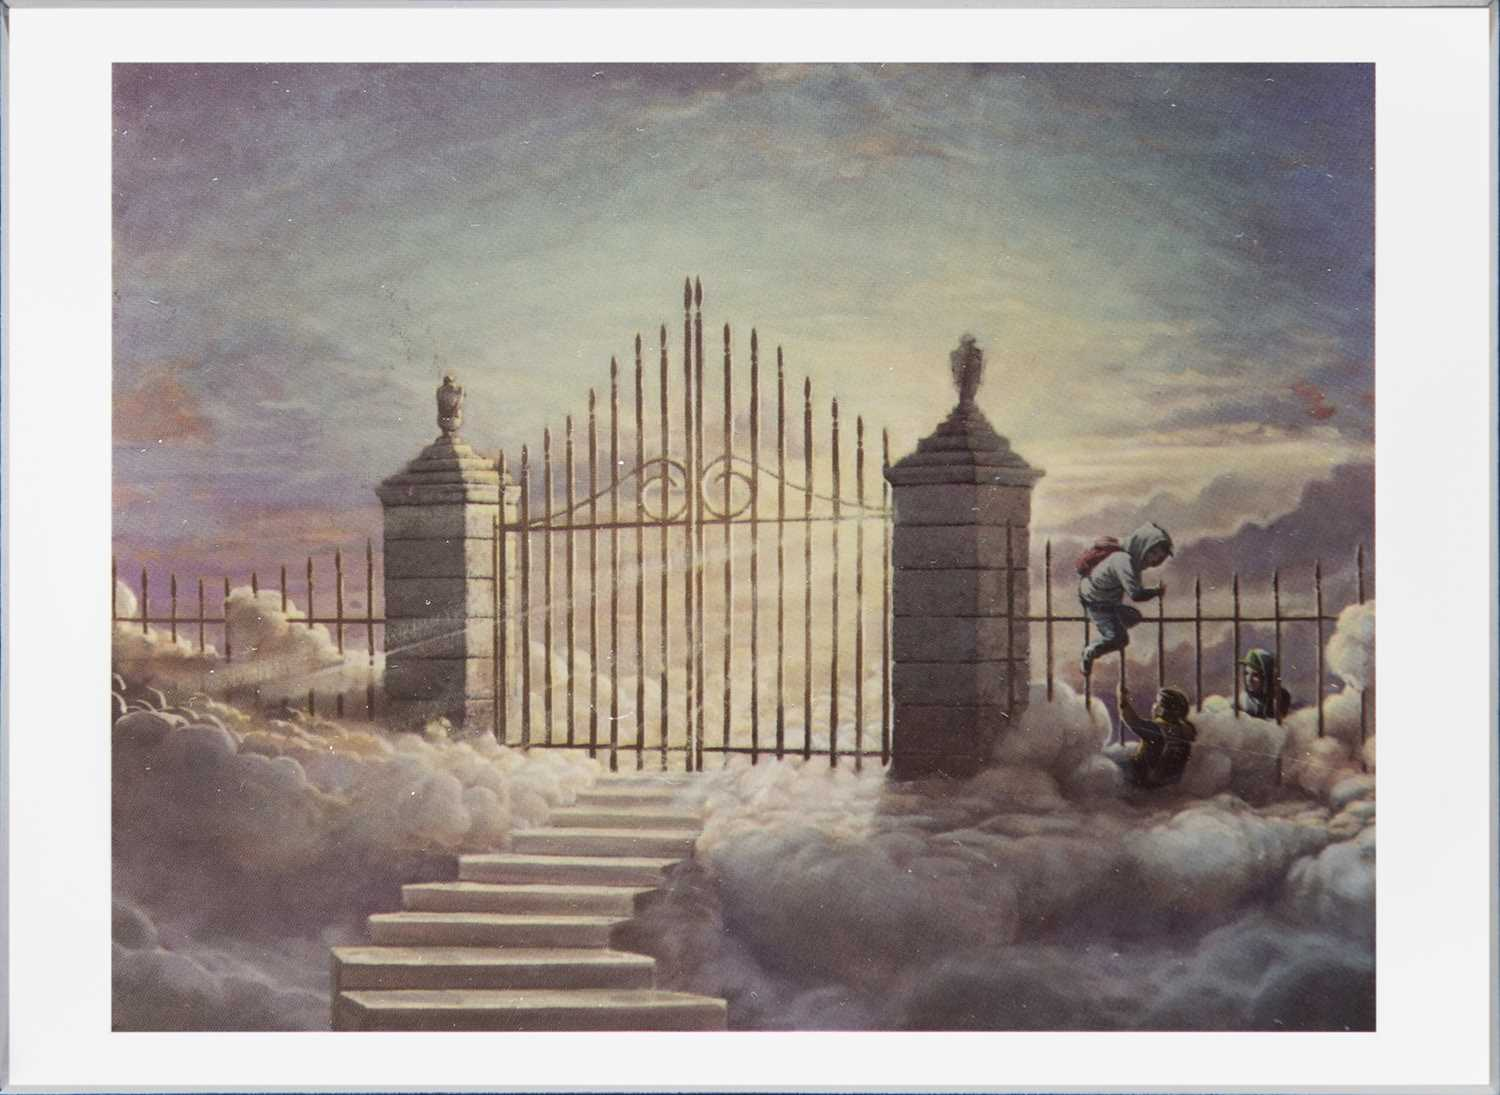 Lot 62 - Banksy (British 1974-), 'Walled Off Hotel Postcard', 2017